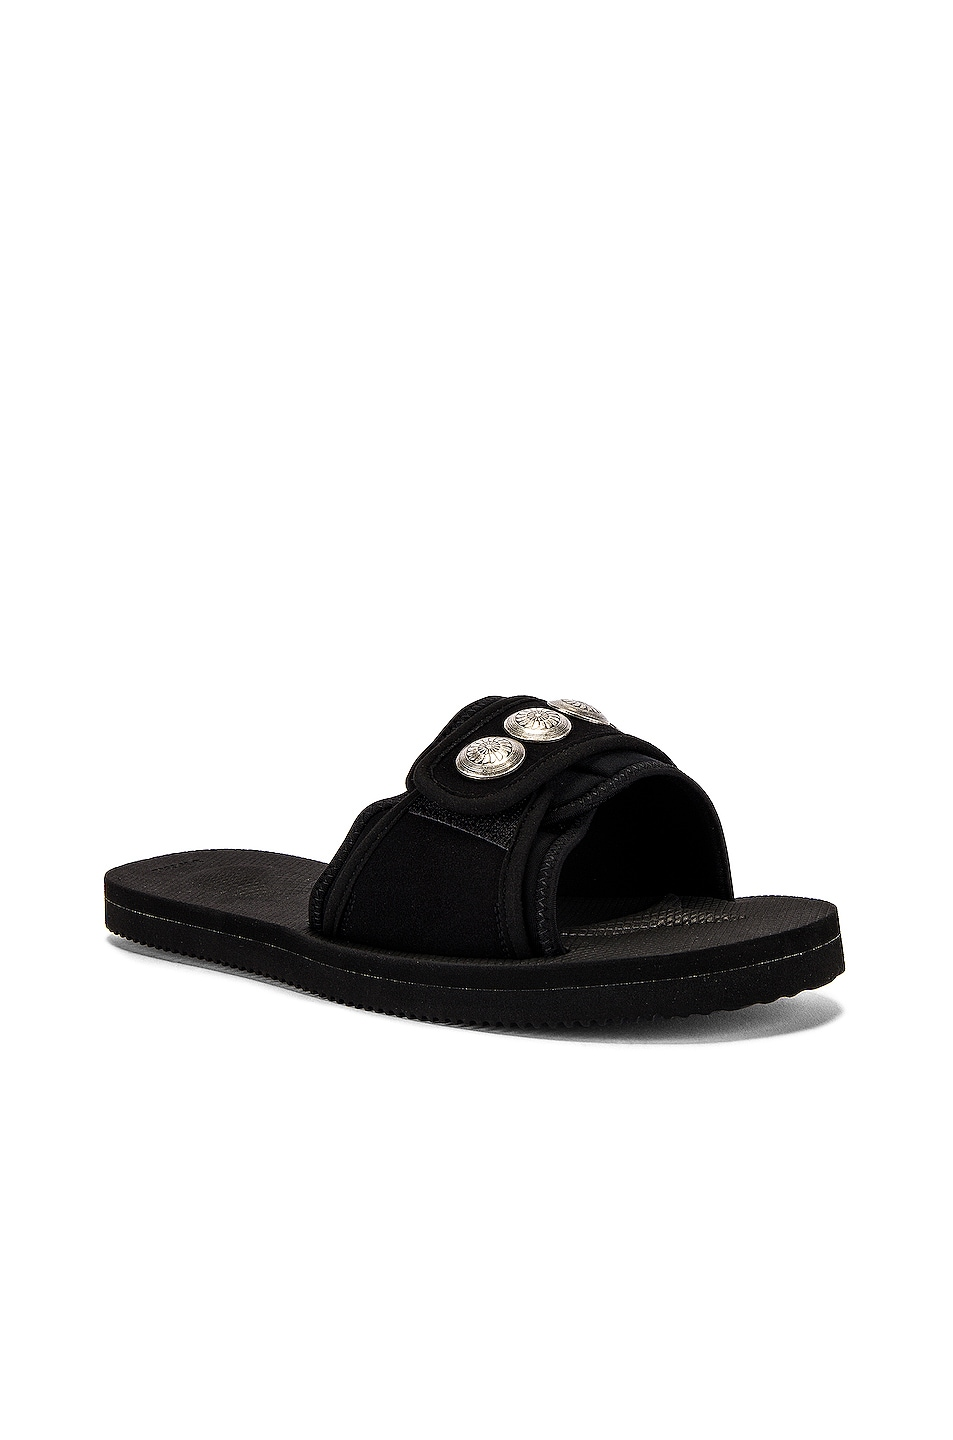 Image 1 of JOHN ELLIOTT x Blackmeans x Suicoke Lotus Slide in Black